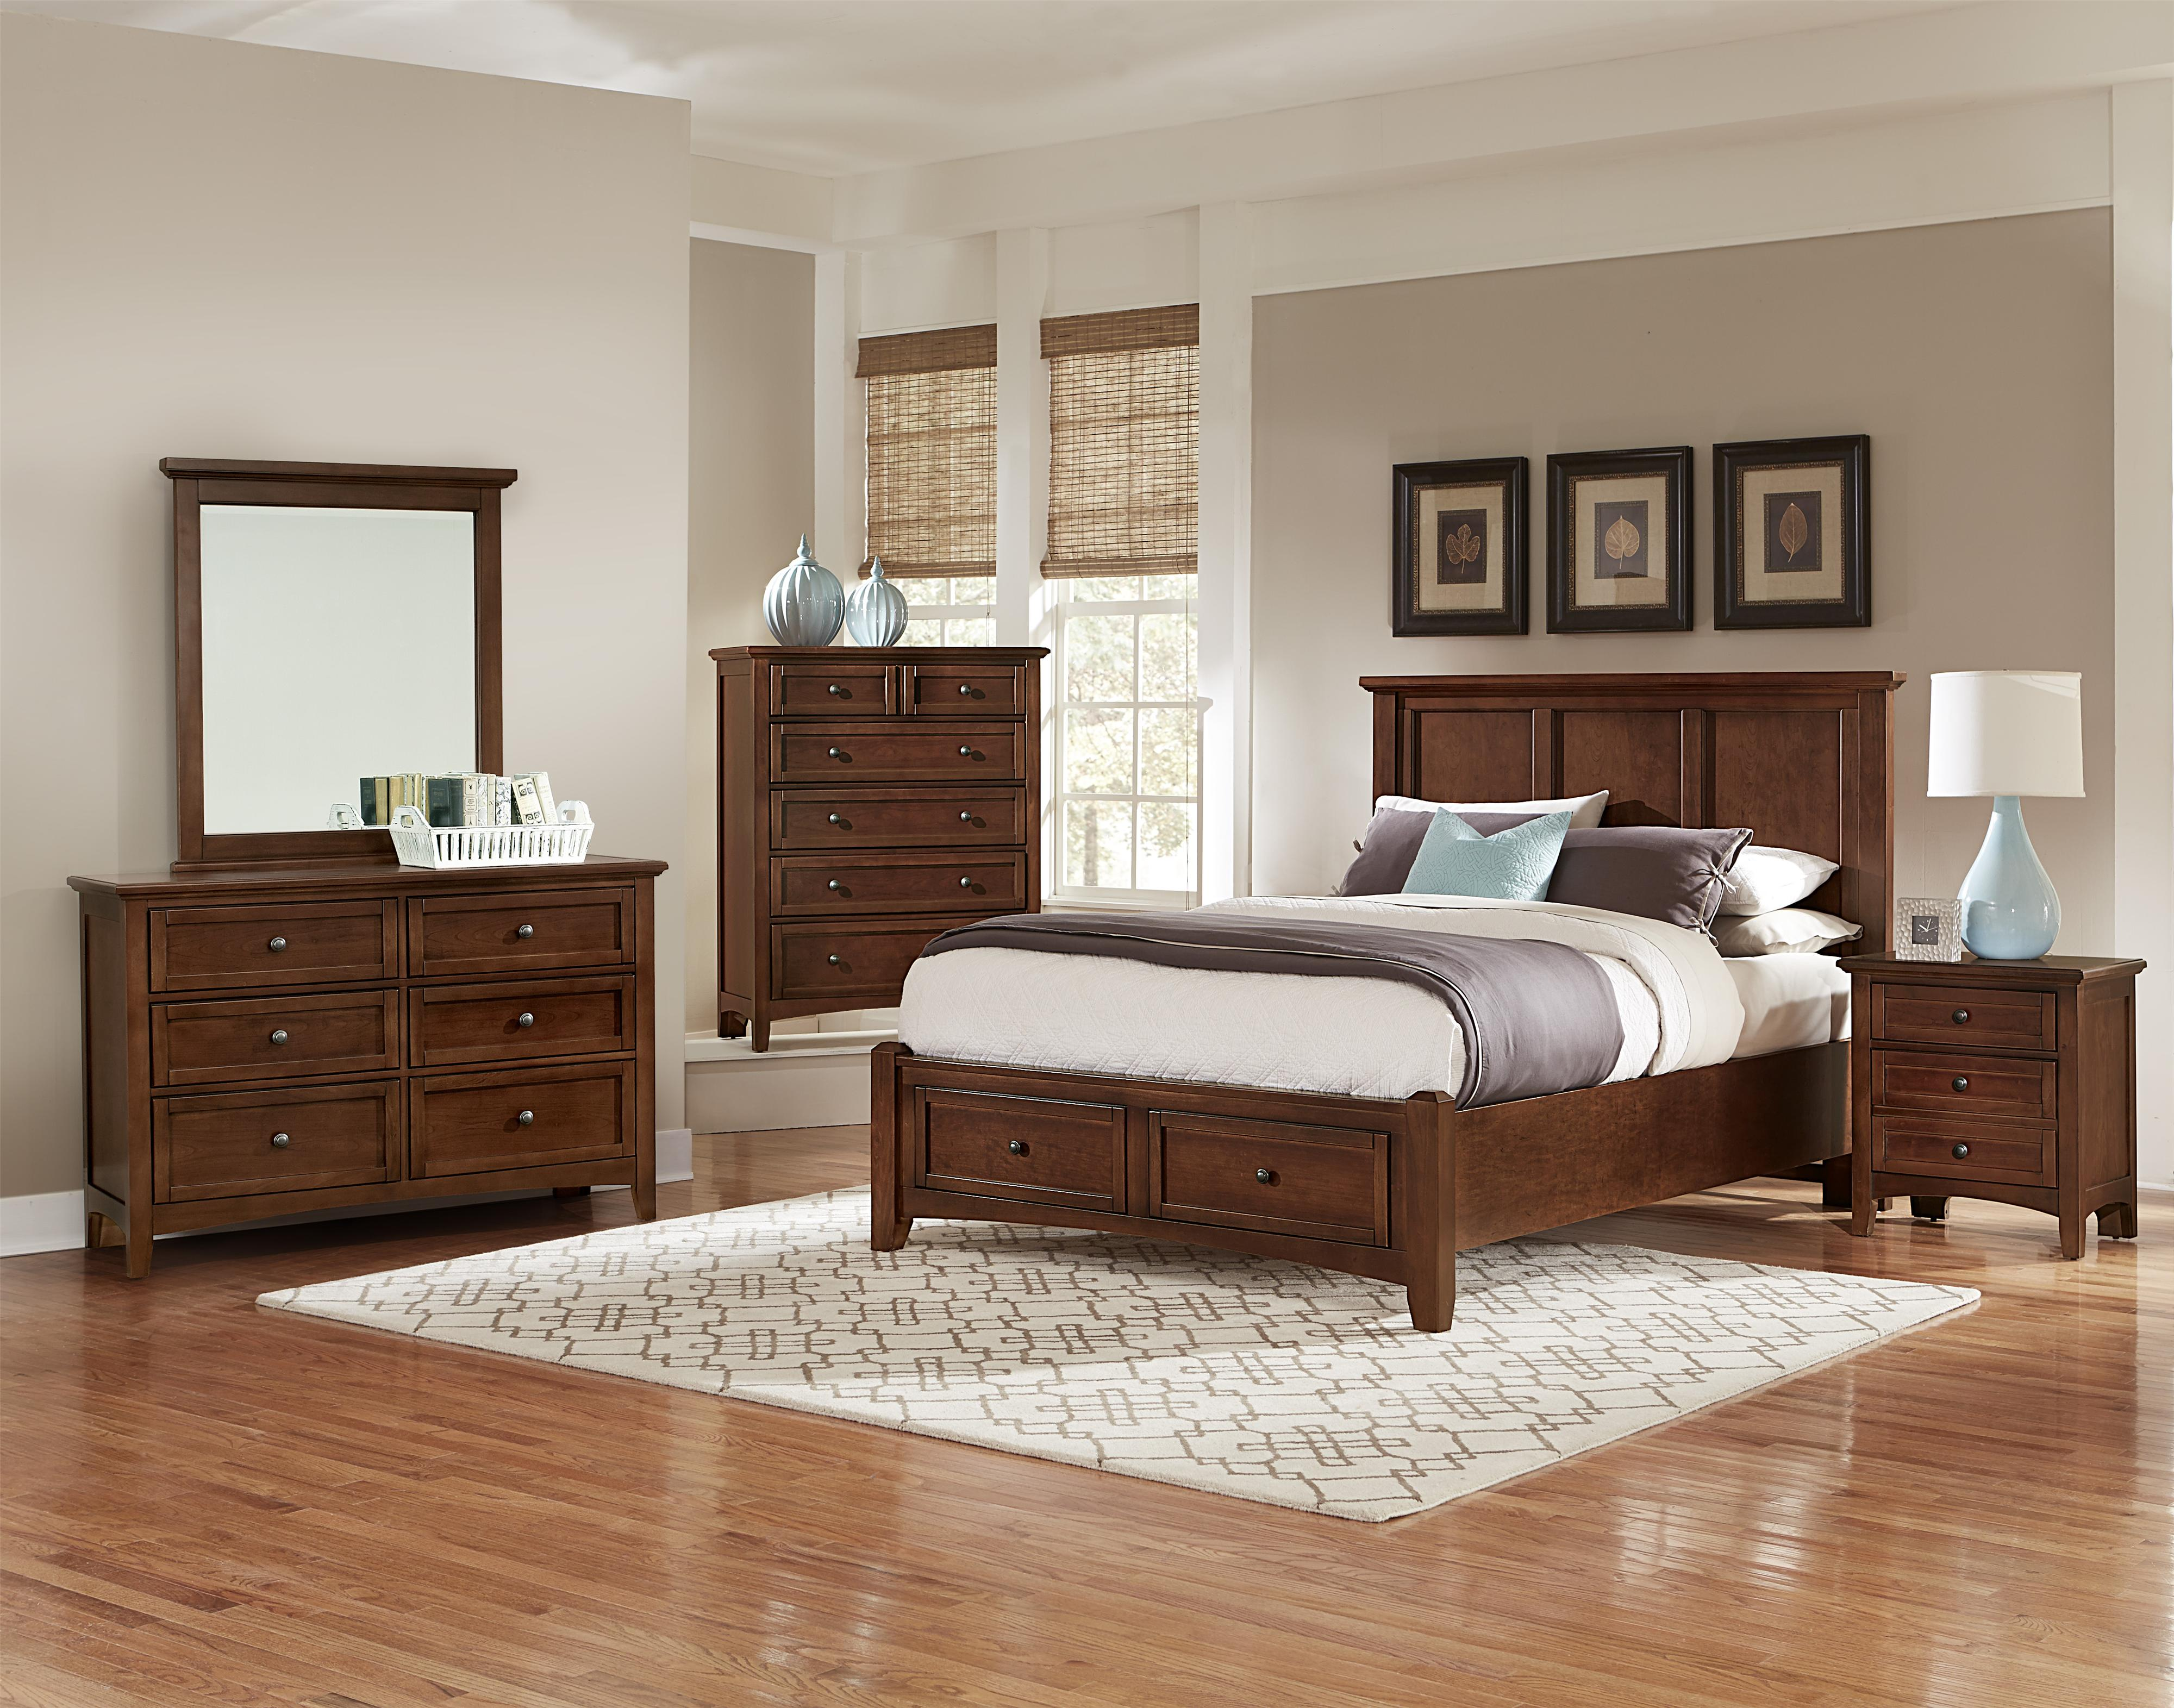 Bonanza Queen Bedroom Group by Vaughan Bassett at Johnny Janosik